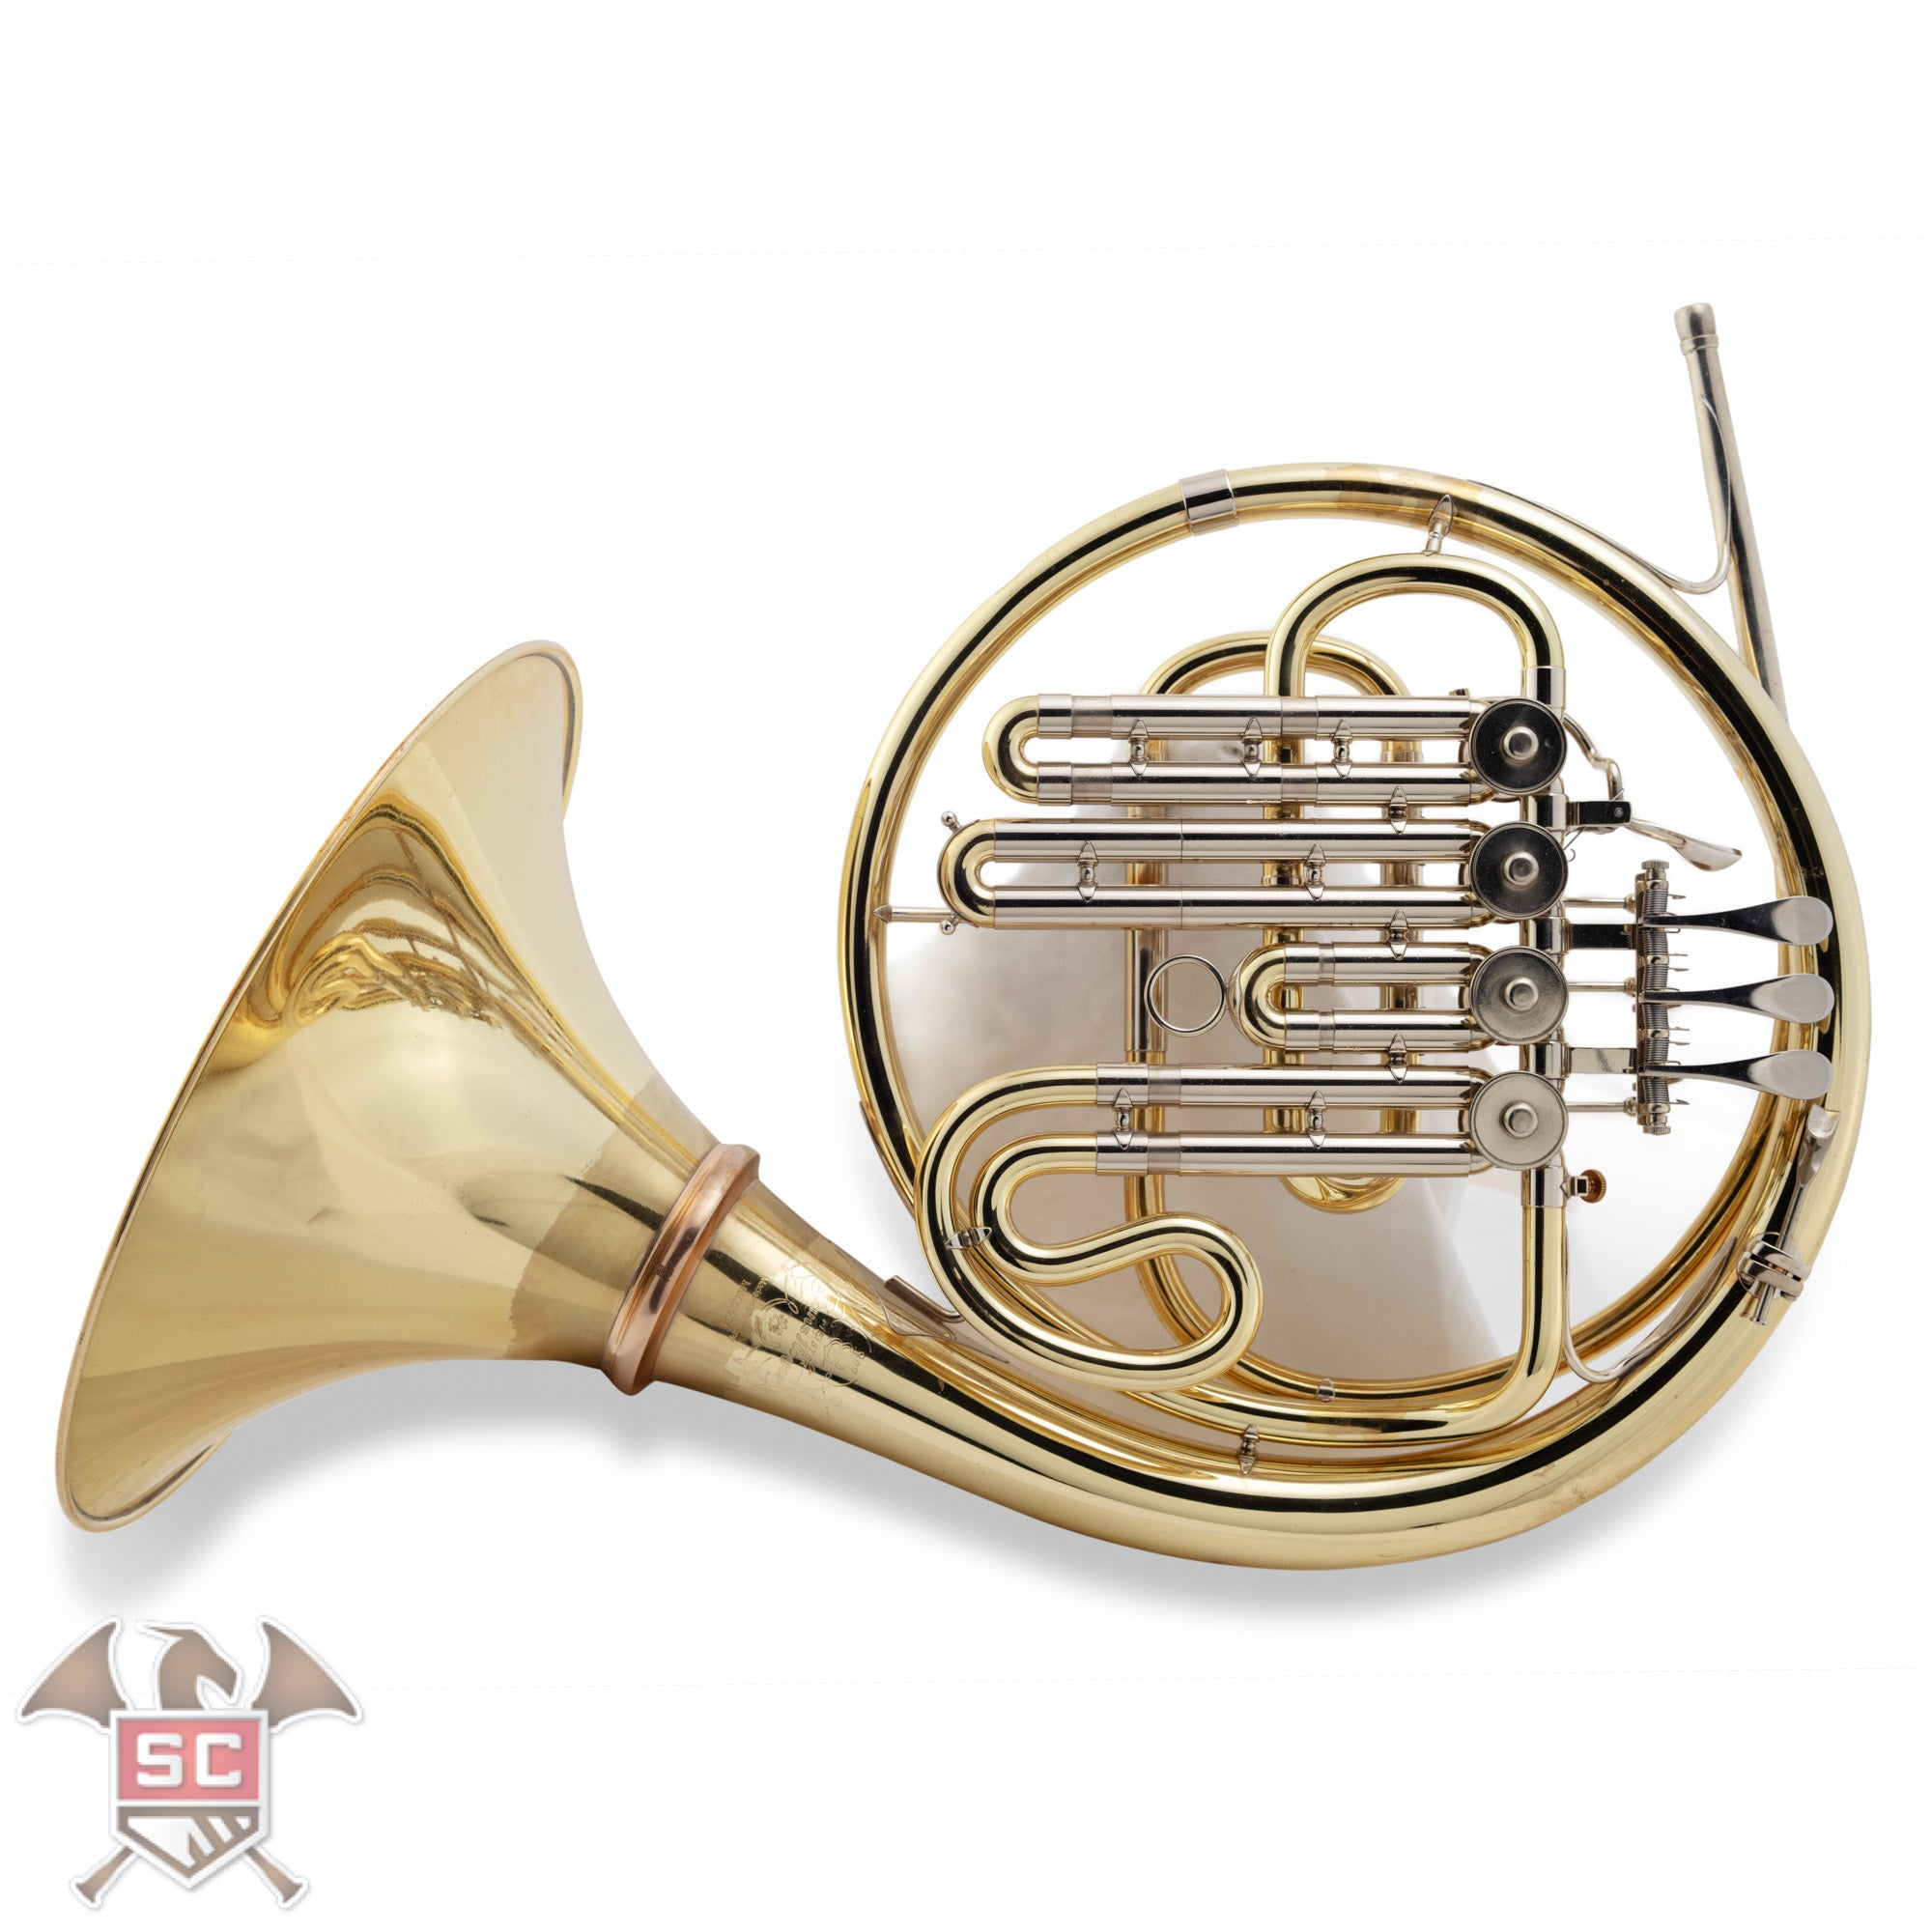 Used Hoyer 704-L Bb single french horn